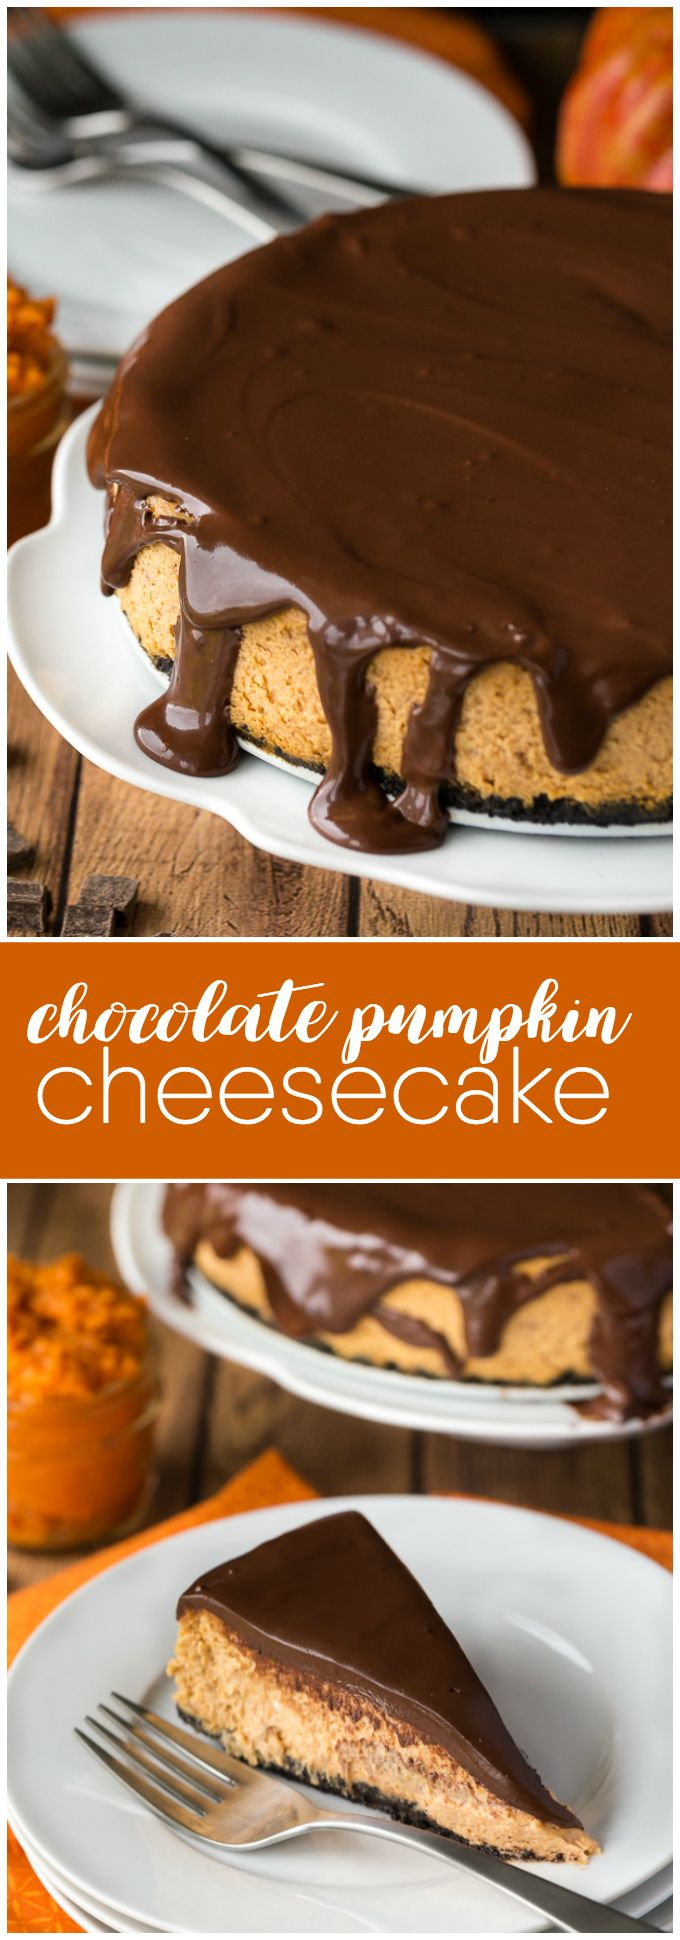 Chocolate Pumpkin Cheesecake - Prepared with a chocolate cookie crumb crust and a creamy, smooth pumpkin cheesecake filling. Topped off with a thick chocolate ganache, this is one scrumptious cheesecake. It tastes even better than it looks!